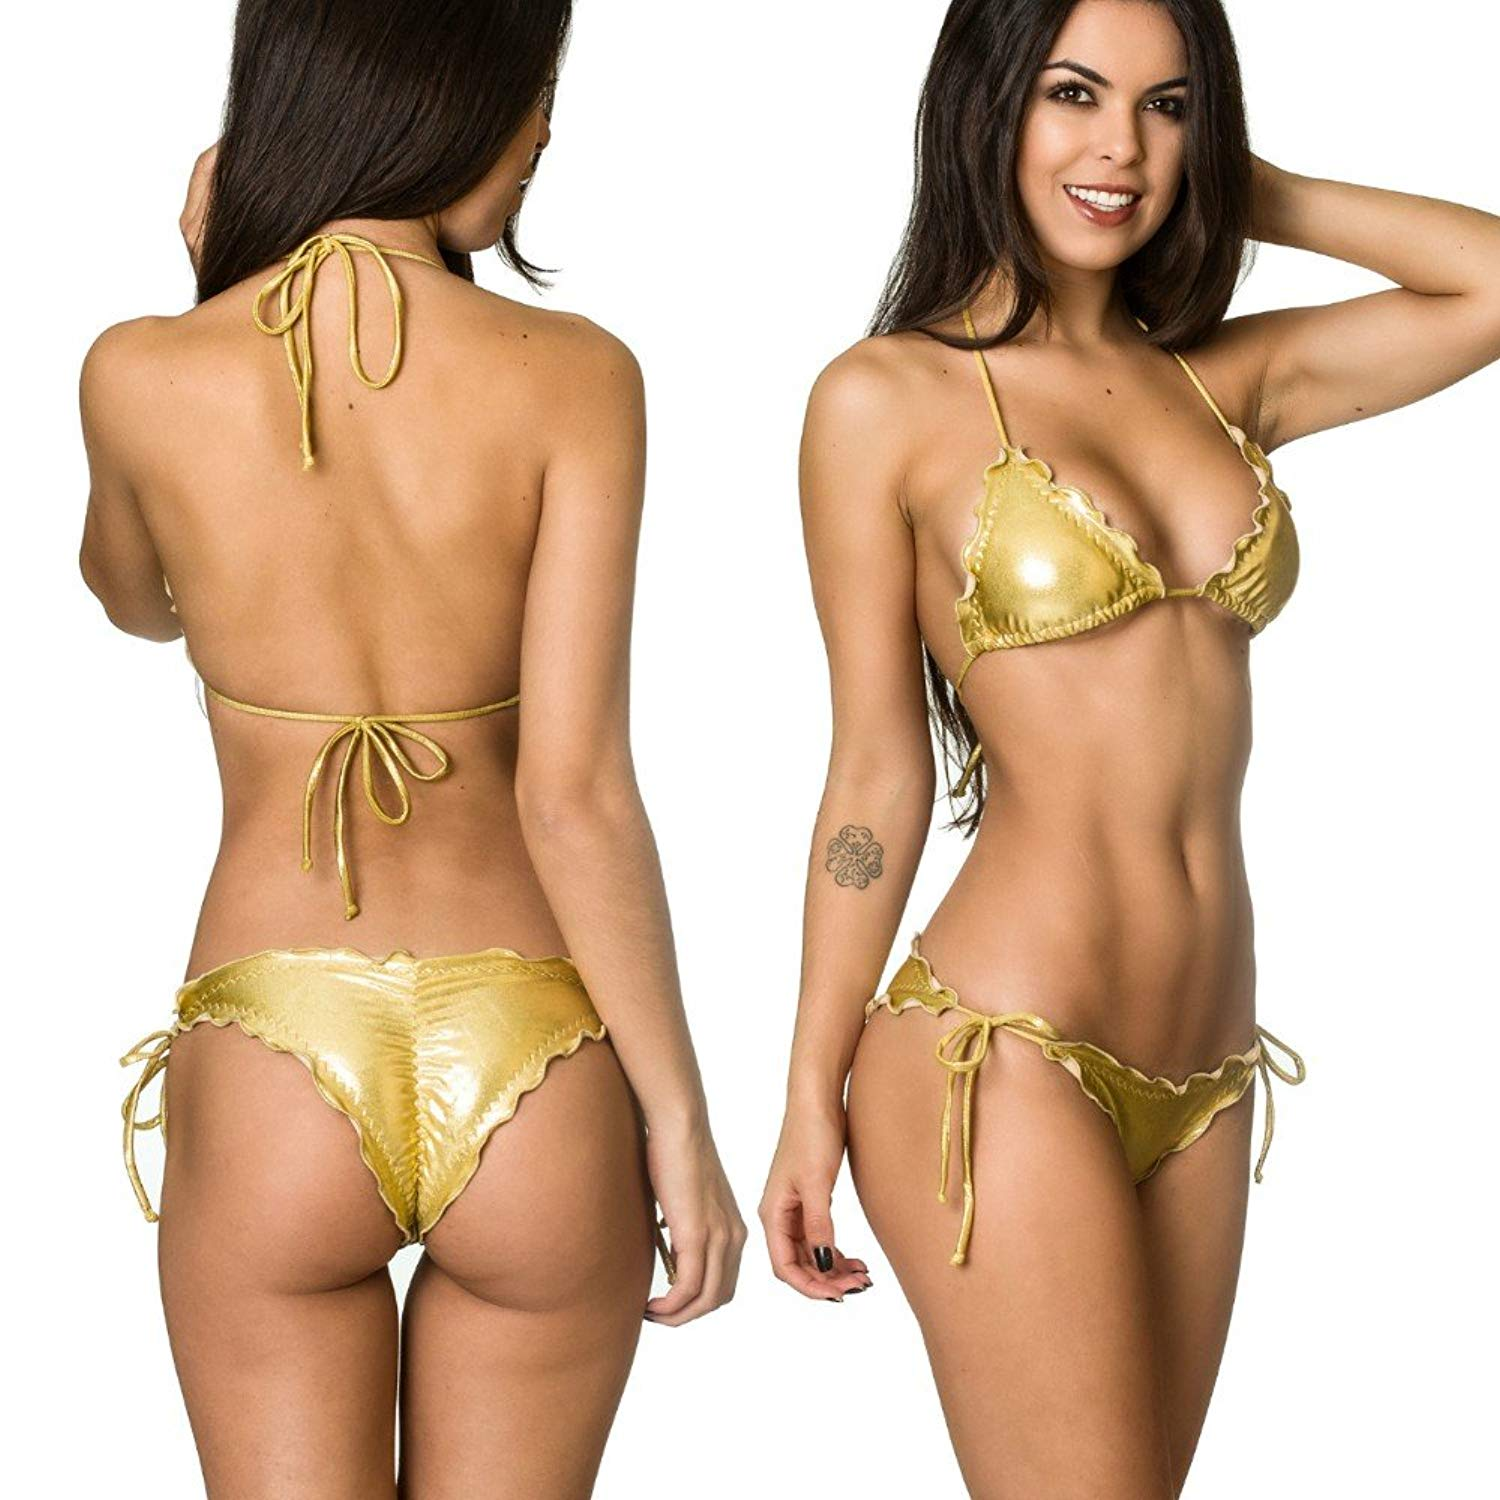 On BikiniFind Skimpy Brazilian Deals Bikini Cheap FJ3cl1uTK